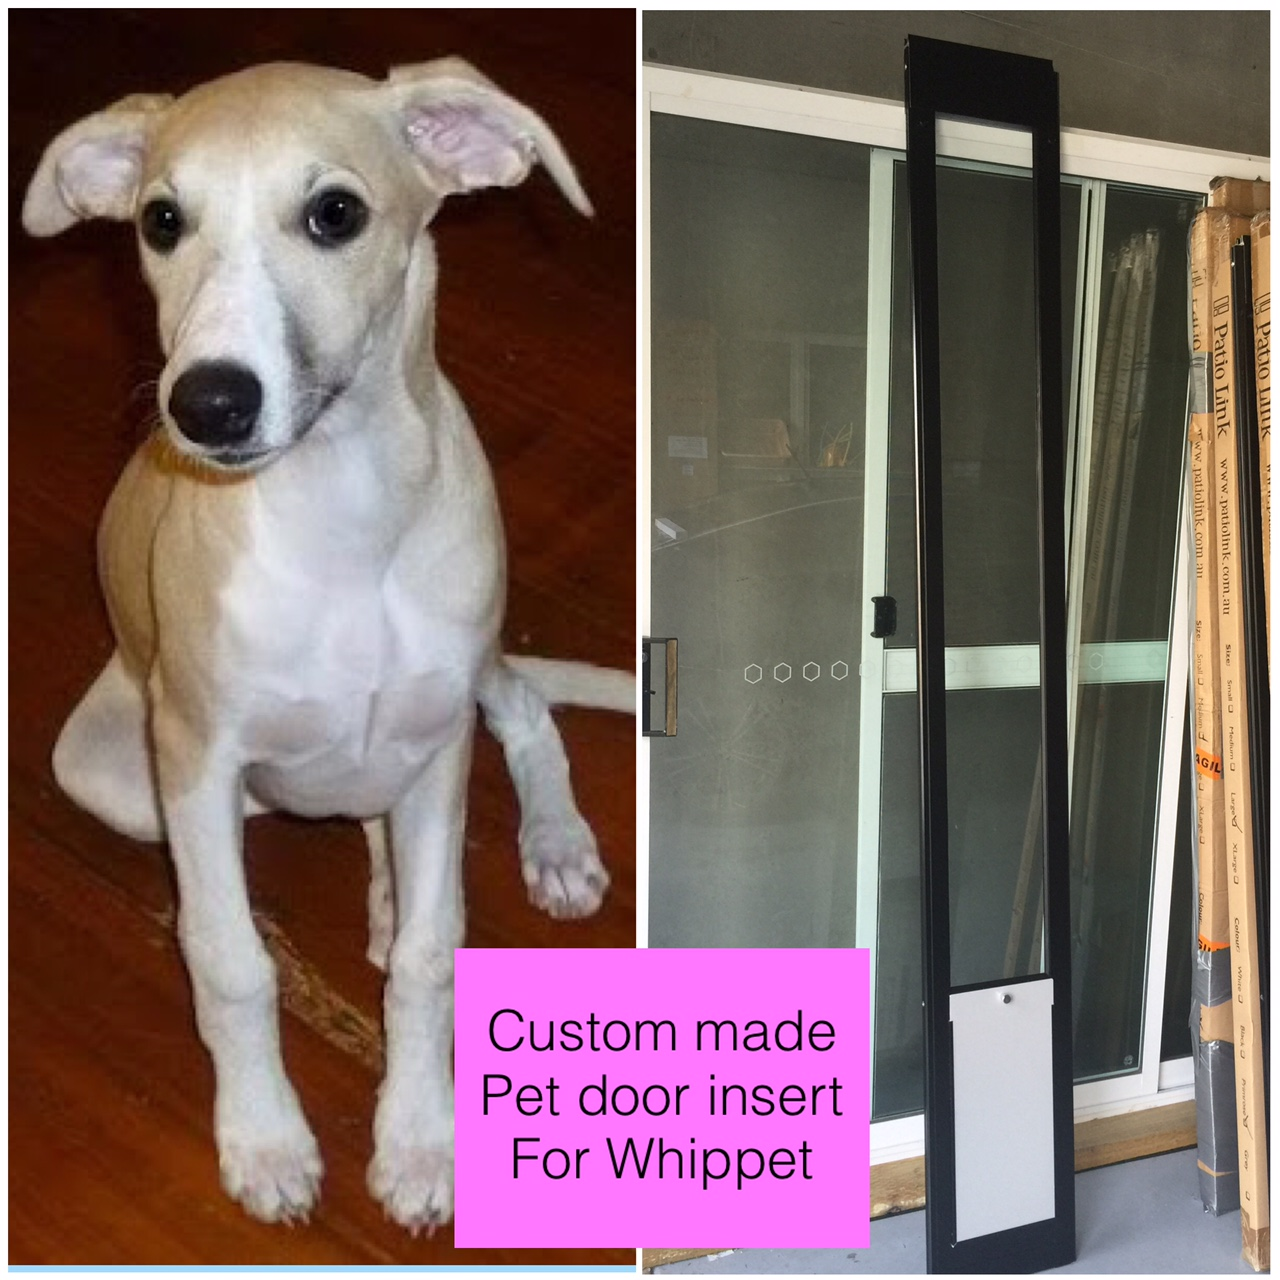 Whippet Custom door.jpg